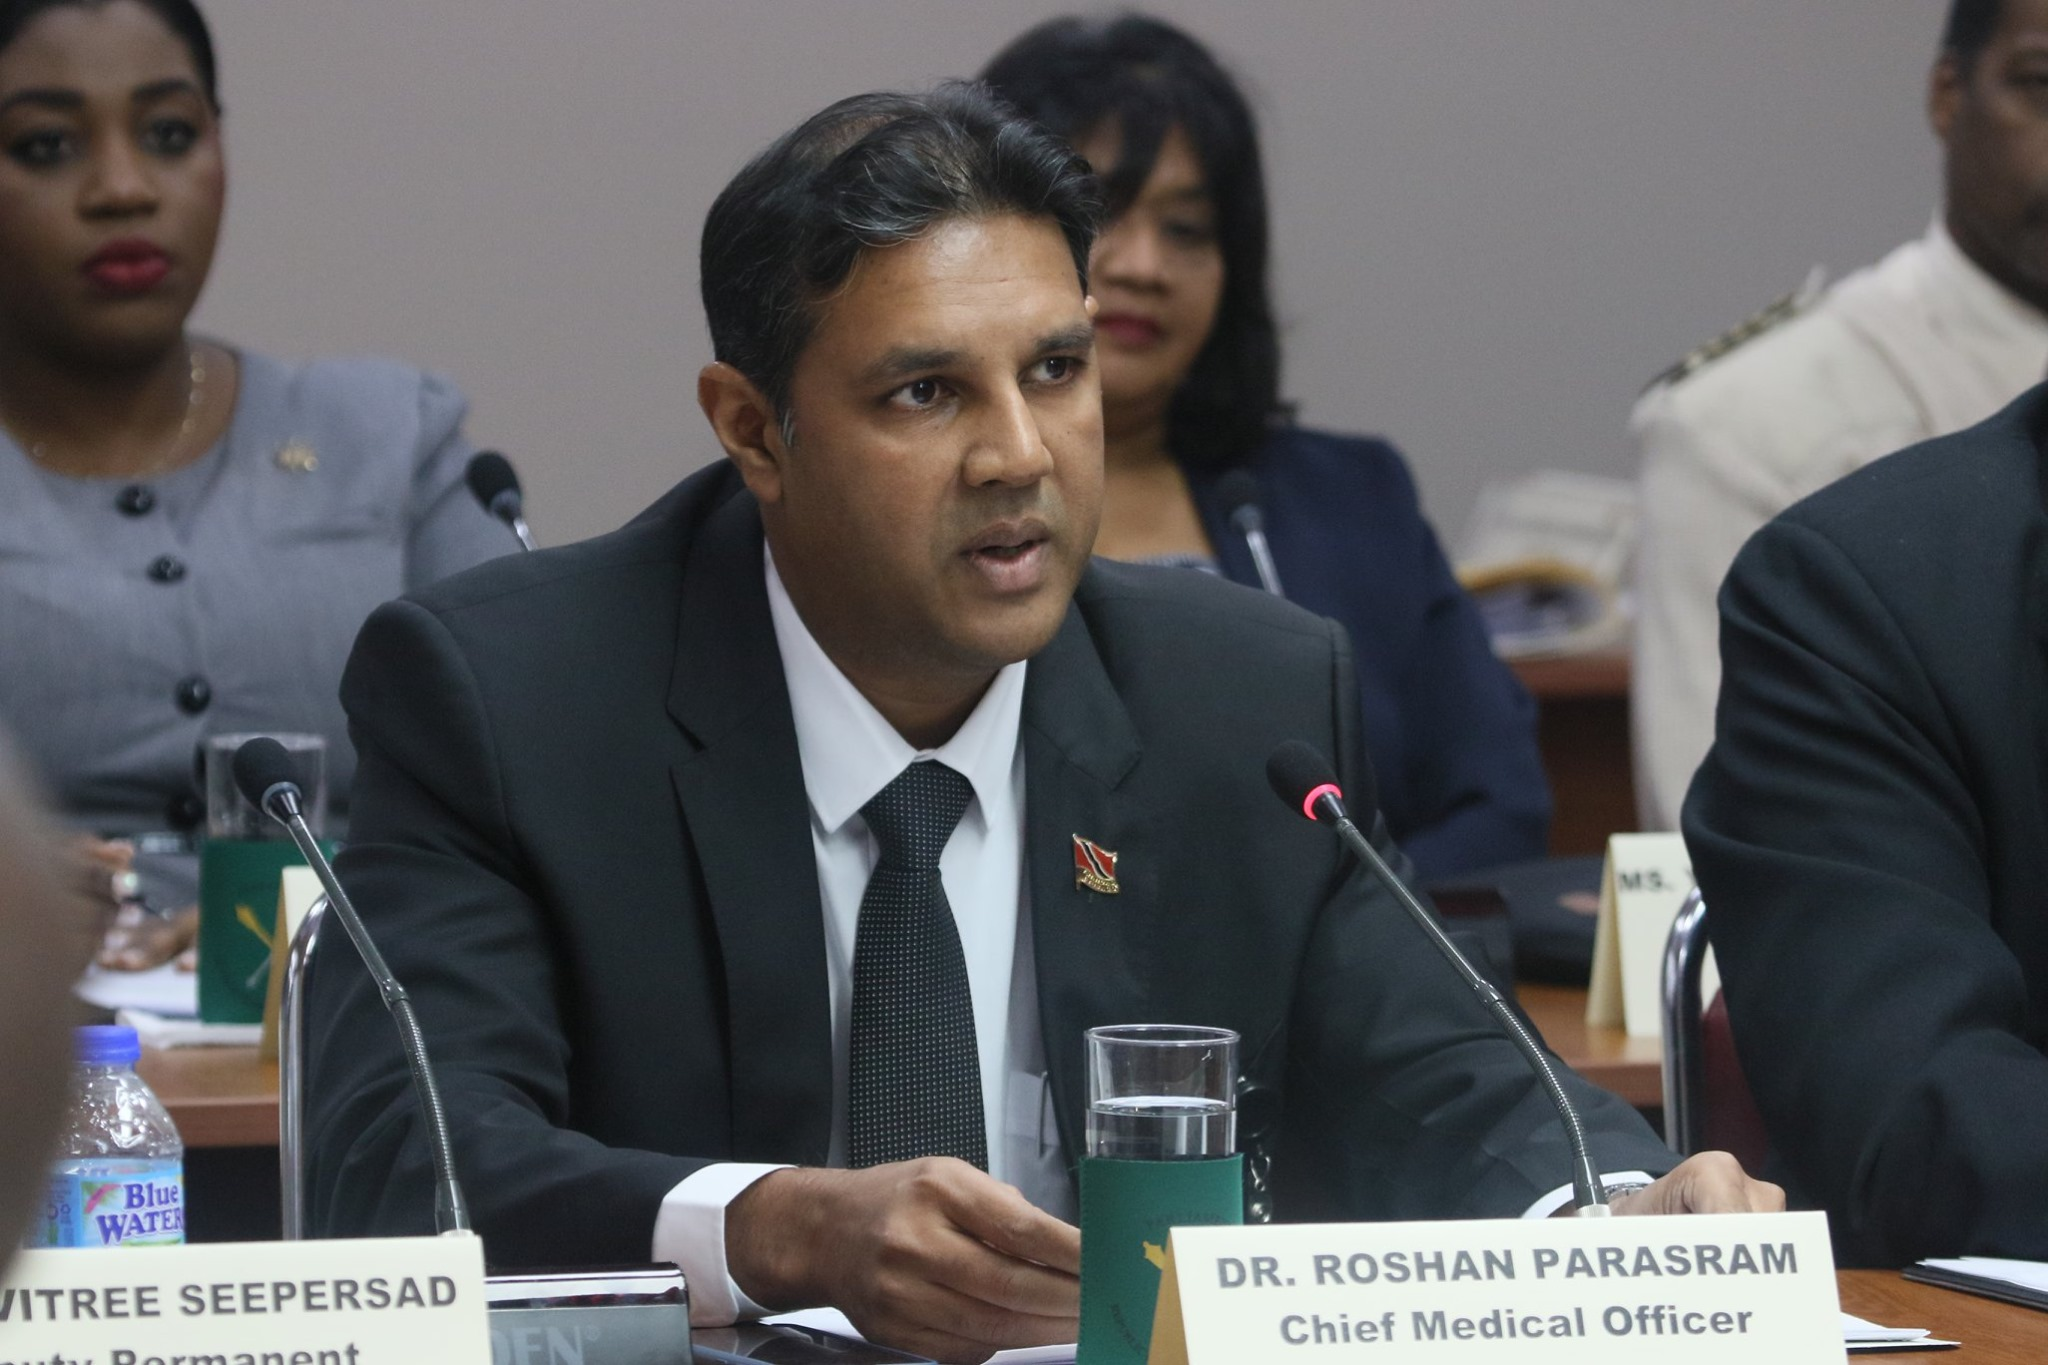 File photo: Chief Medical Officer, Dr Roshan Parasram